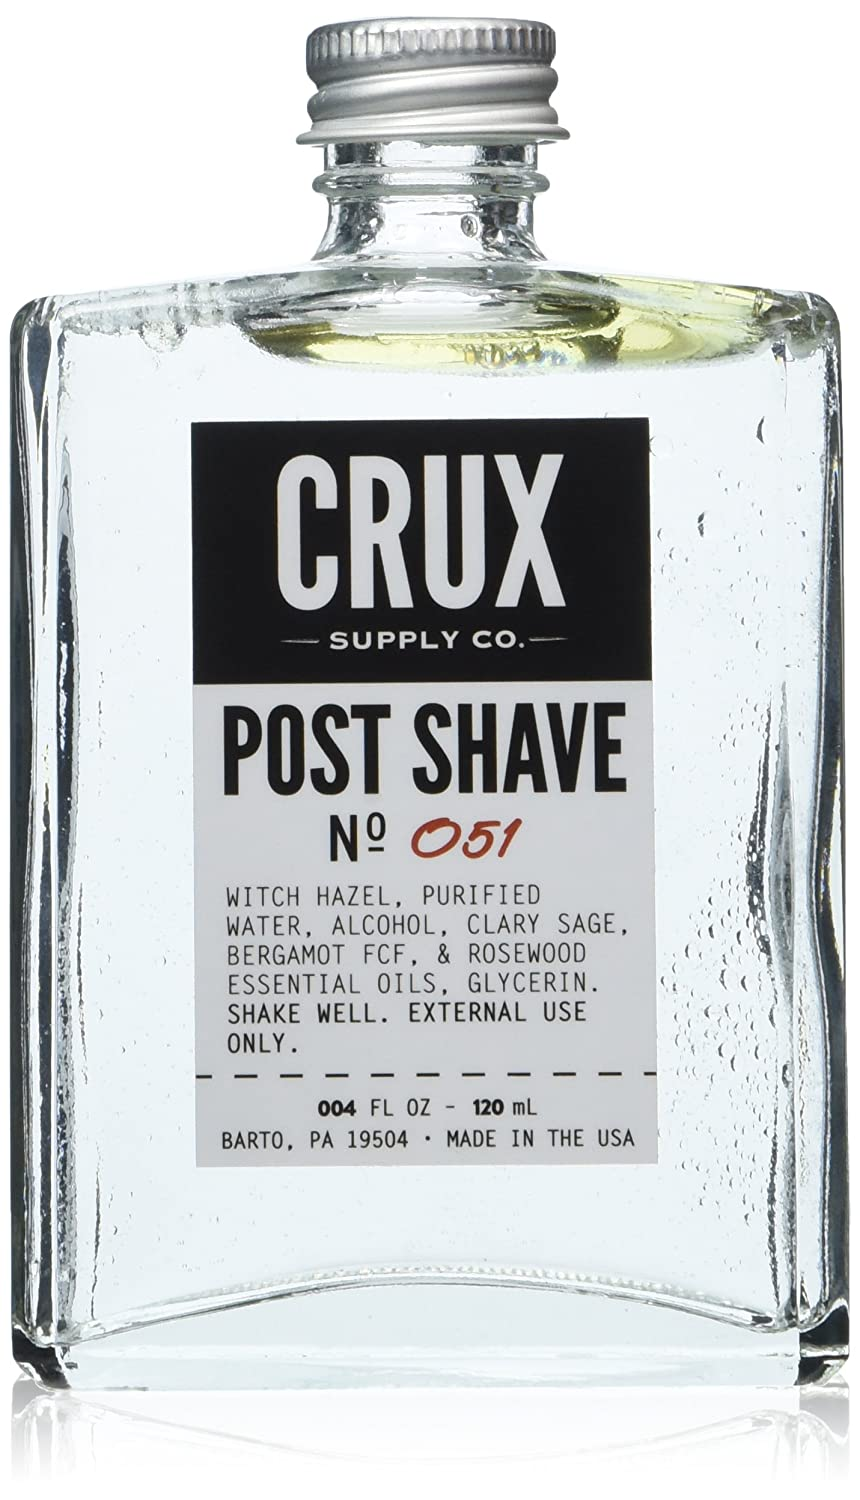 CRUX Supply Co. - All Natural Post Shave Tonic (4 oz/120 ml)